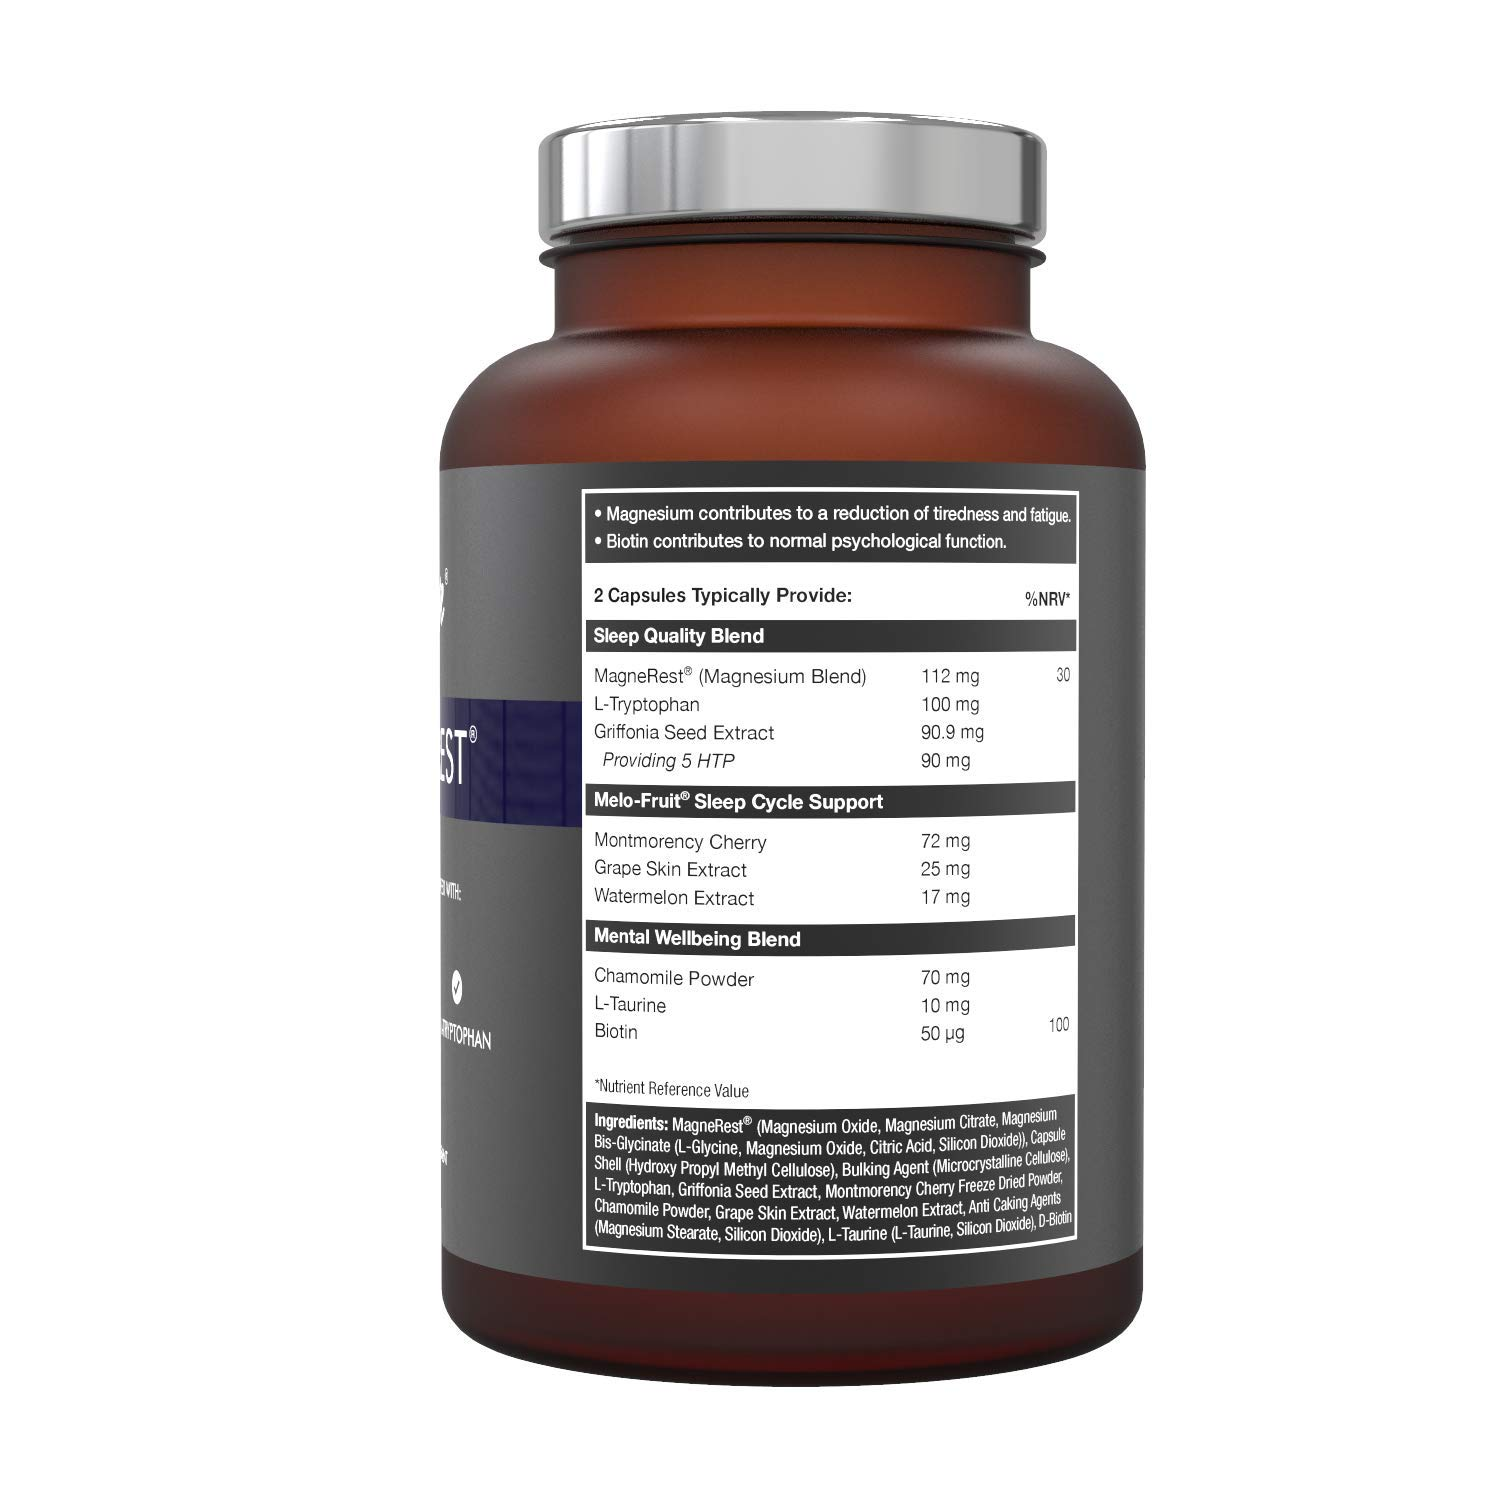 5-HTP + Magnesium + Natural Melatonin Sleeping Aid - Montmorency Cherry,  Chamomile, L Tryptophan Supplement Pills | Neuro Rest Tablets by Utmost Me